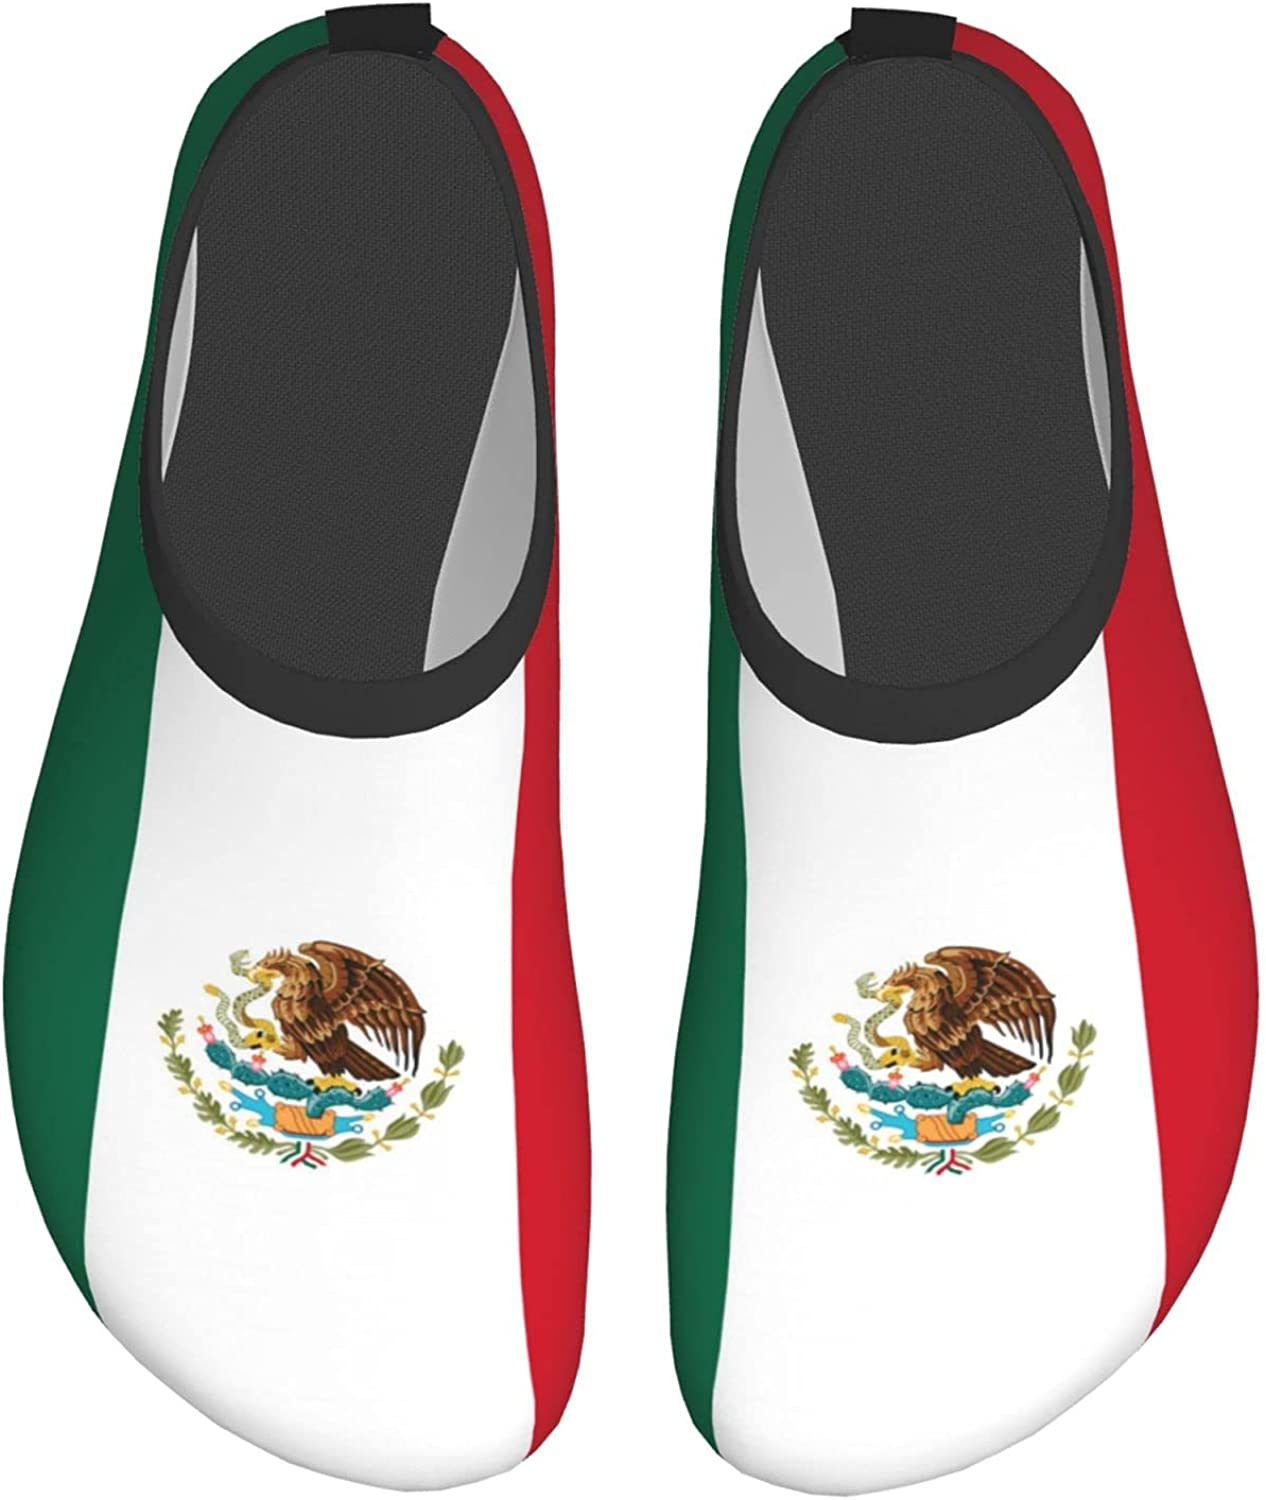 Paiyxxycv Mexico (Mexican) Flag Mens and Womens Water Shoes Barefoot Quick-Dry Aqua Yoga Socks Slip-On for Beach Sports Swim Snorkeling